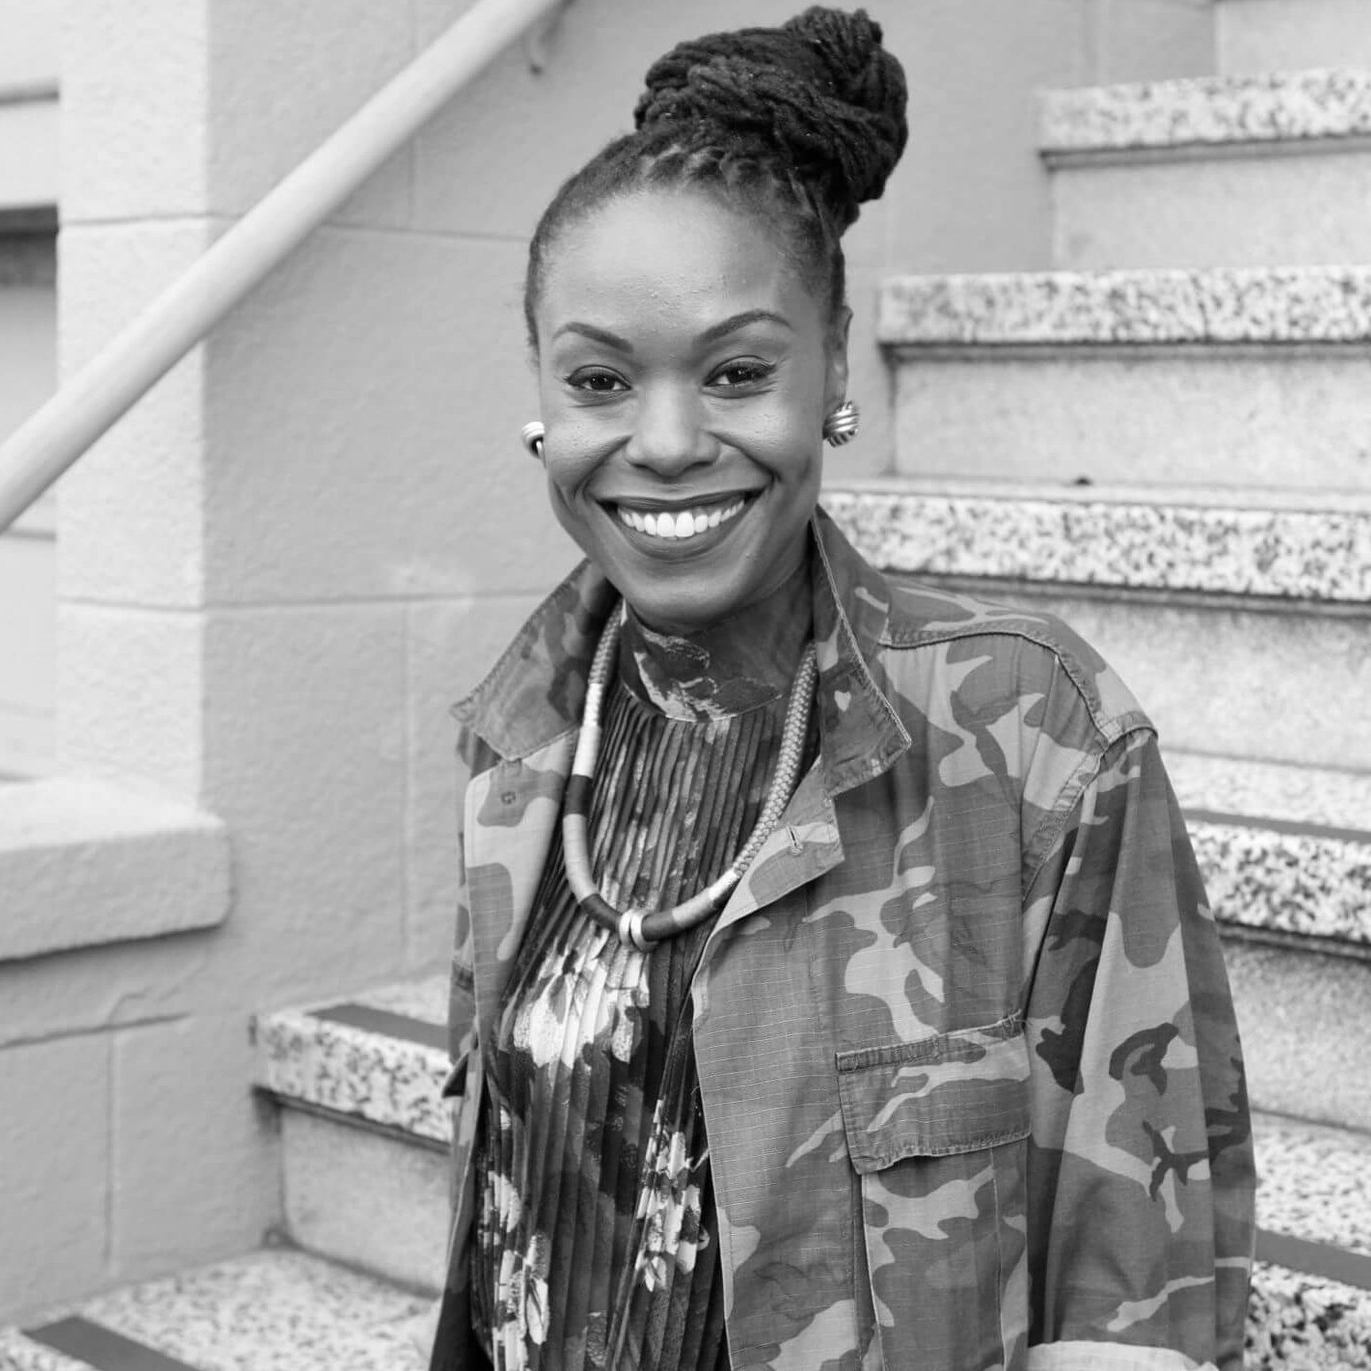 """Zakiya Harris  is a Cultural Architect, Artist and Educator working at the intersections of entrepreneurship, 21st century education and creative transformation. She joined the LATE NITE ART team as a facilitator in 2018. Zakiya is a co-founder of nationally recognized projects  Impact Hub Oakland ,  Grind for the Green  and a Fellow of  Green For All  and Bold Food. Currently, she is the Chief Innovation Officer at  Hack the Hood  a technology program for low-income youth of color. Recently, Zakiya published her first book  Sh8peshift Your Life: The Creative Entrepreneurs Guide to Self Love, Self Mastery and Fearless Self Expression . When she is """"off the clock"""" you can find her  singing  her heart out onstage, reading Octavia Butler or cooking with her 12 year old daughter."""